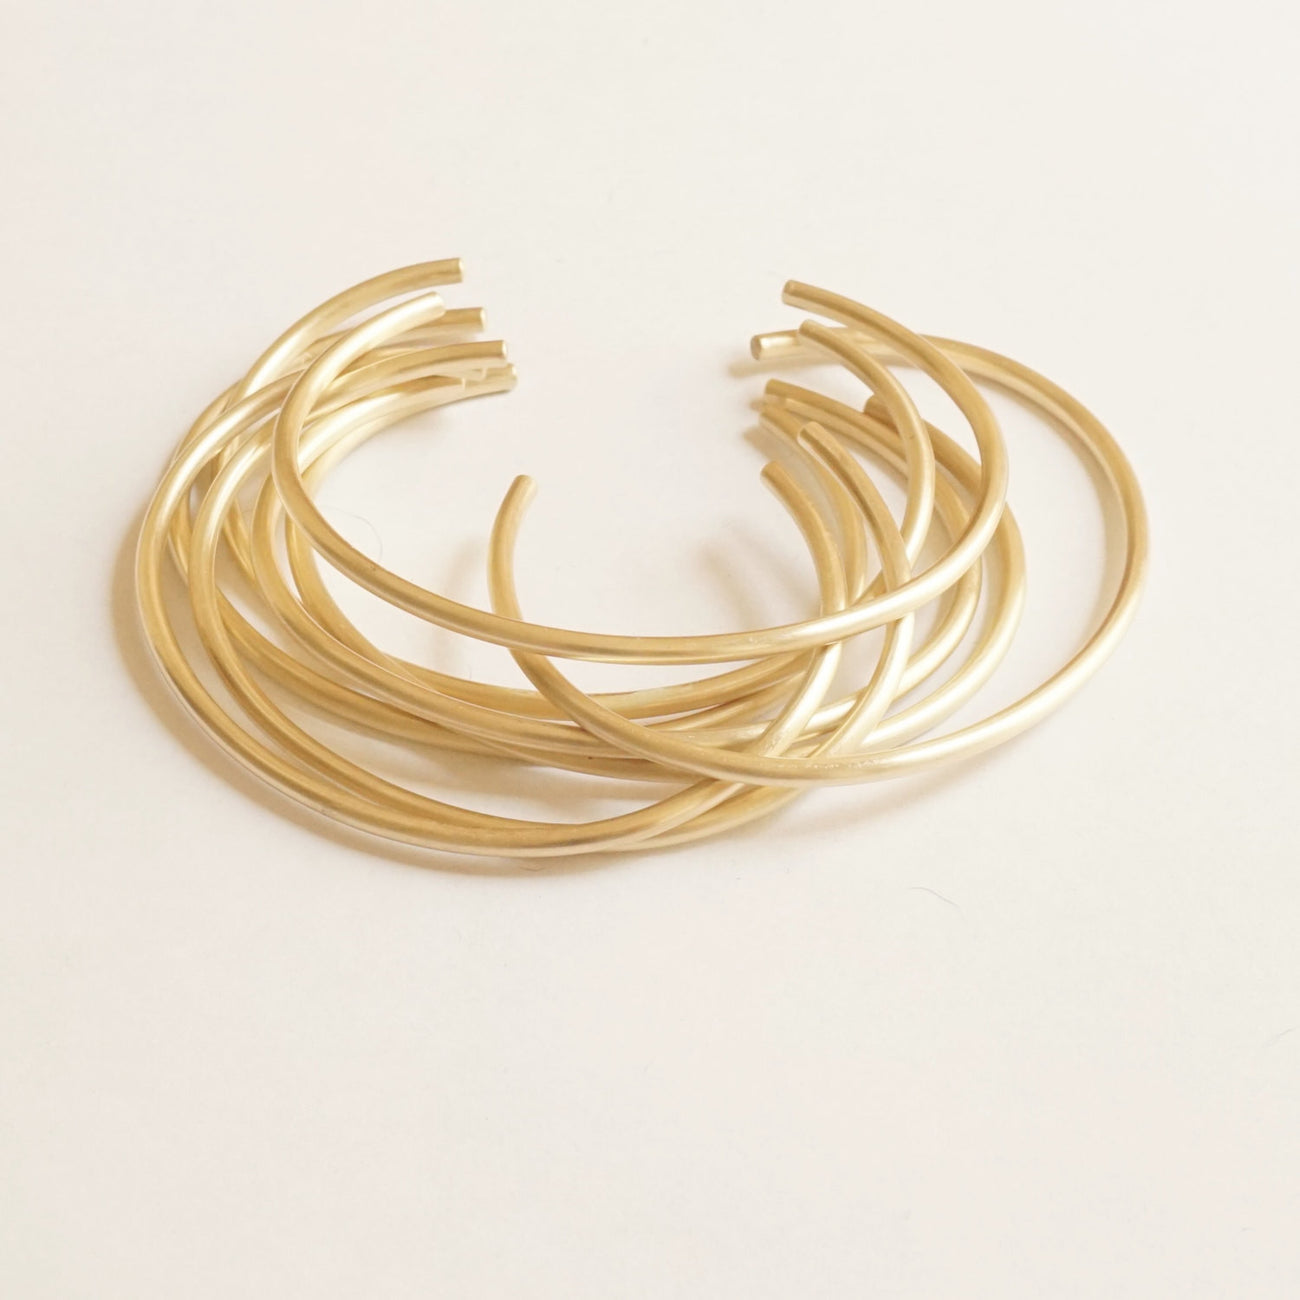 Elegant Yet Affordable - A Set Of Four Hand-Made Adjustable Brass Cuff Stacking Bracelets - 0052 - Virginia Wynne Designs